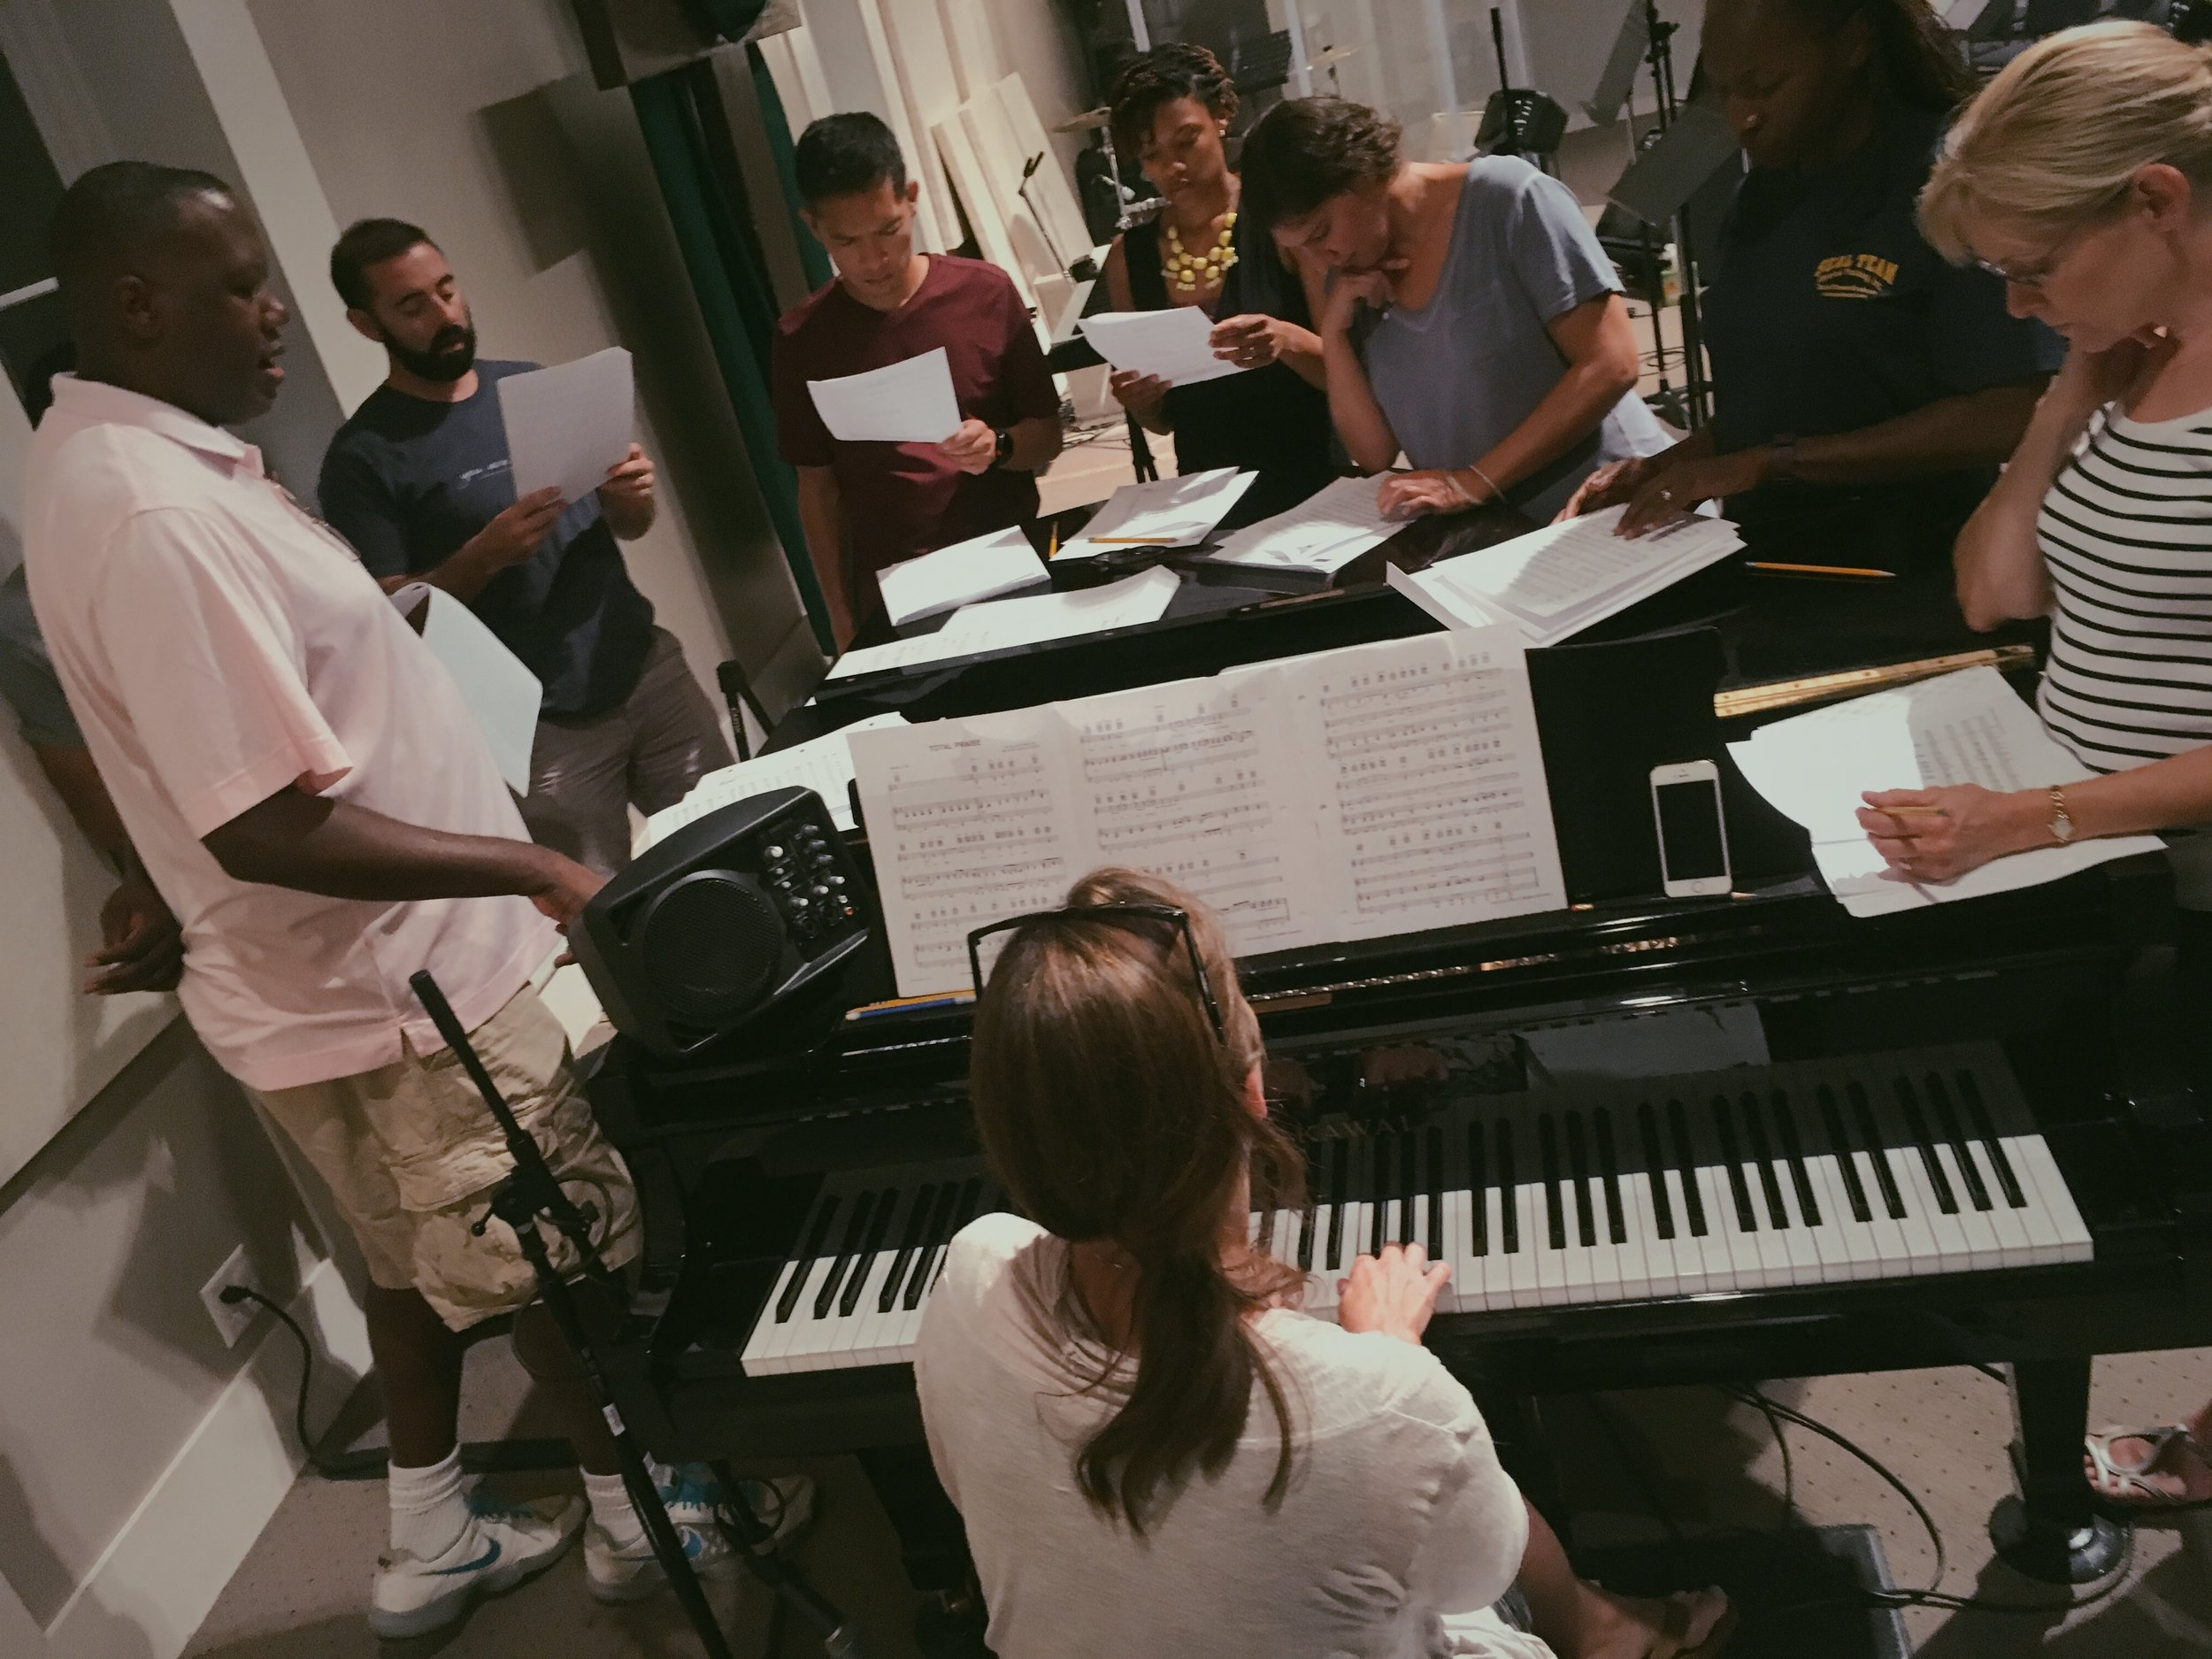 One of many small group rehearsals with the choir for our Night of Hope and Reconciliation: For the City, Through the Arts.